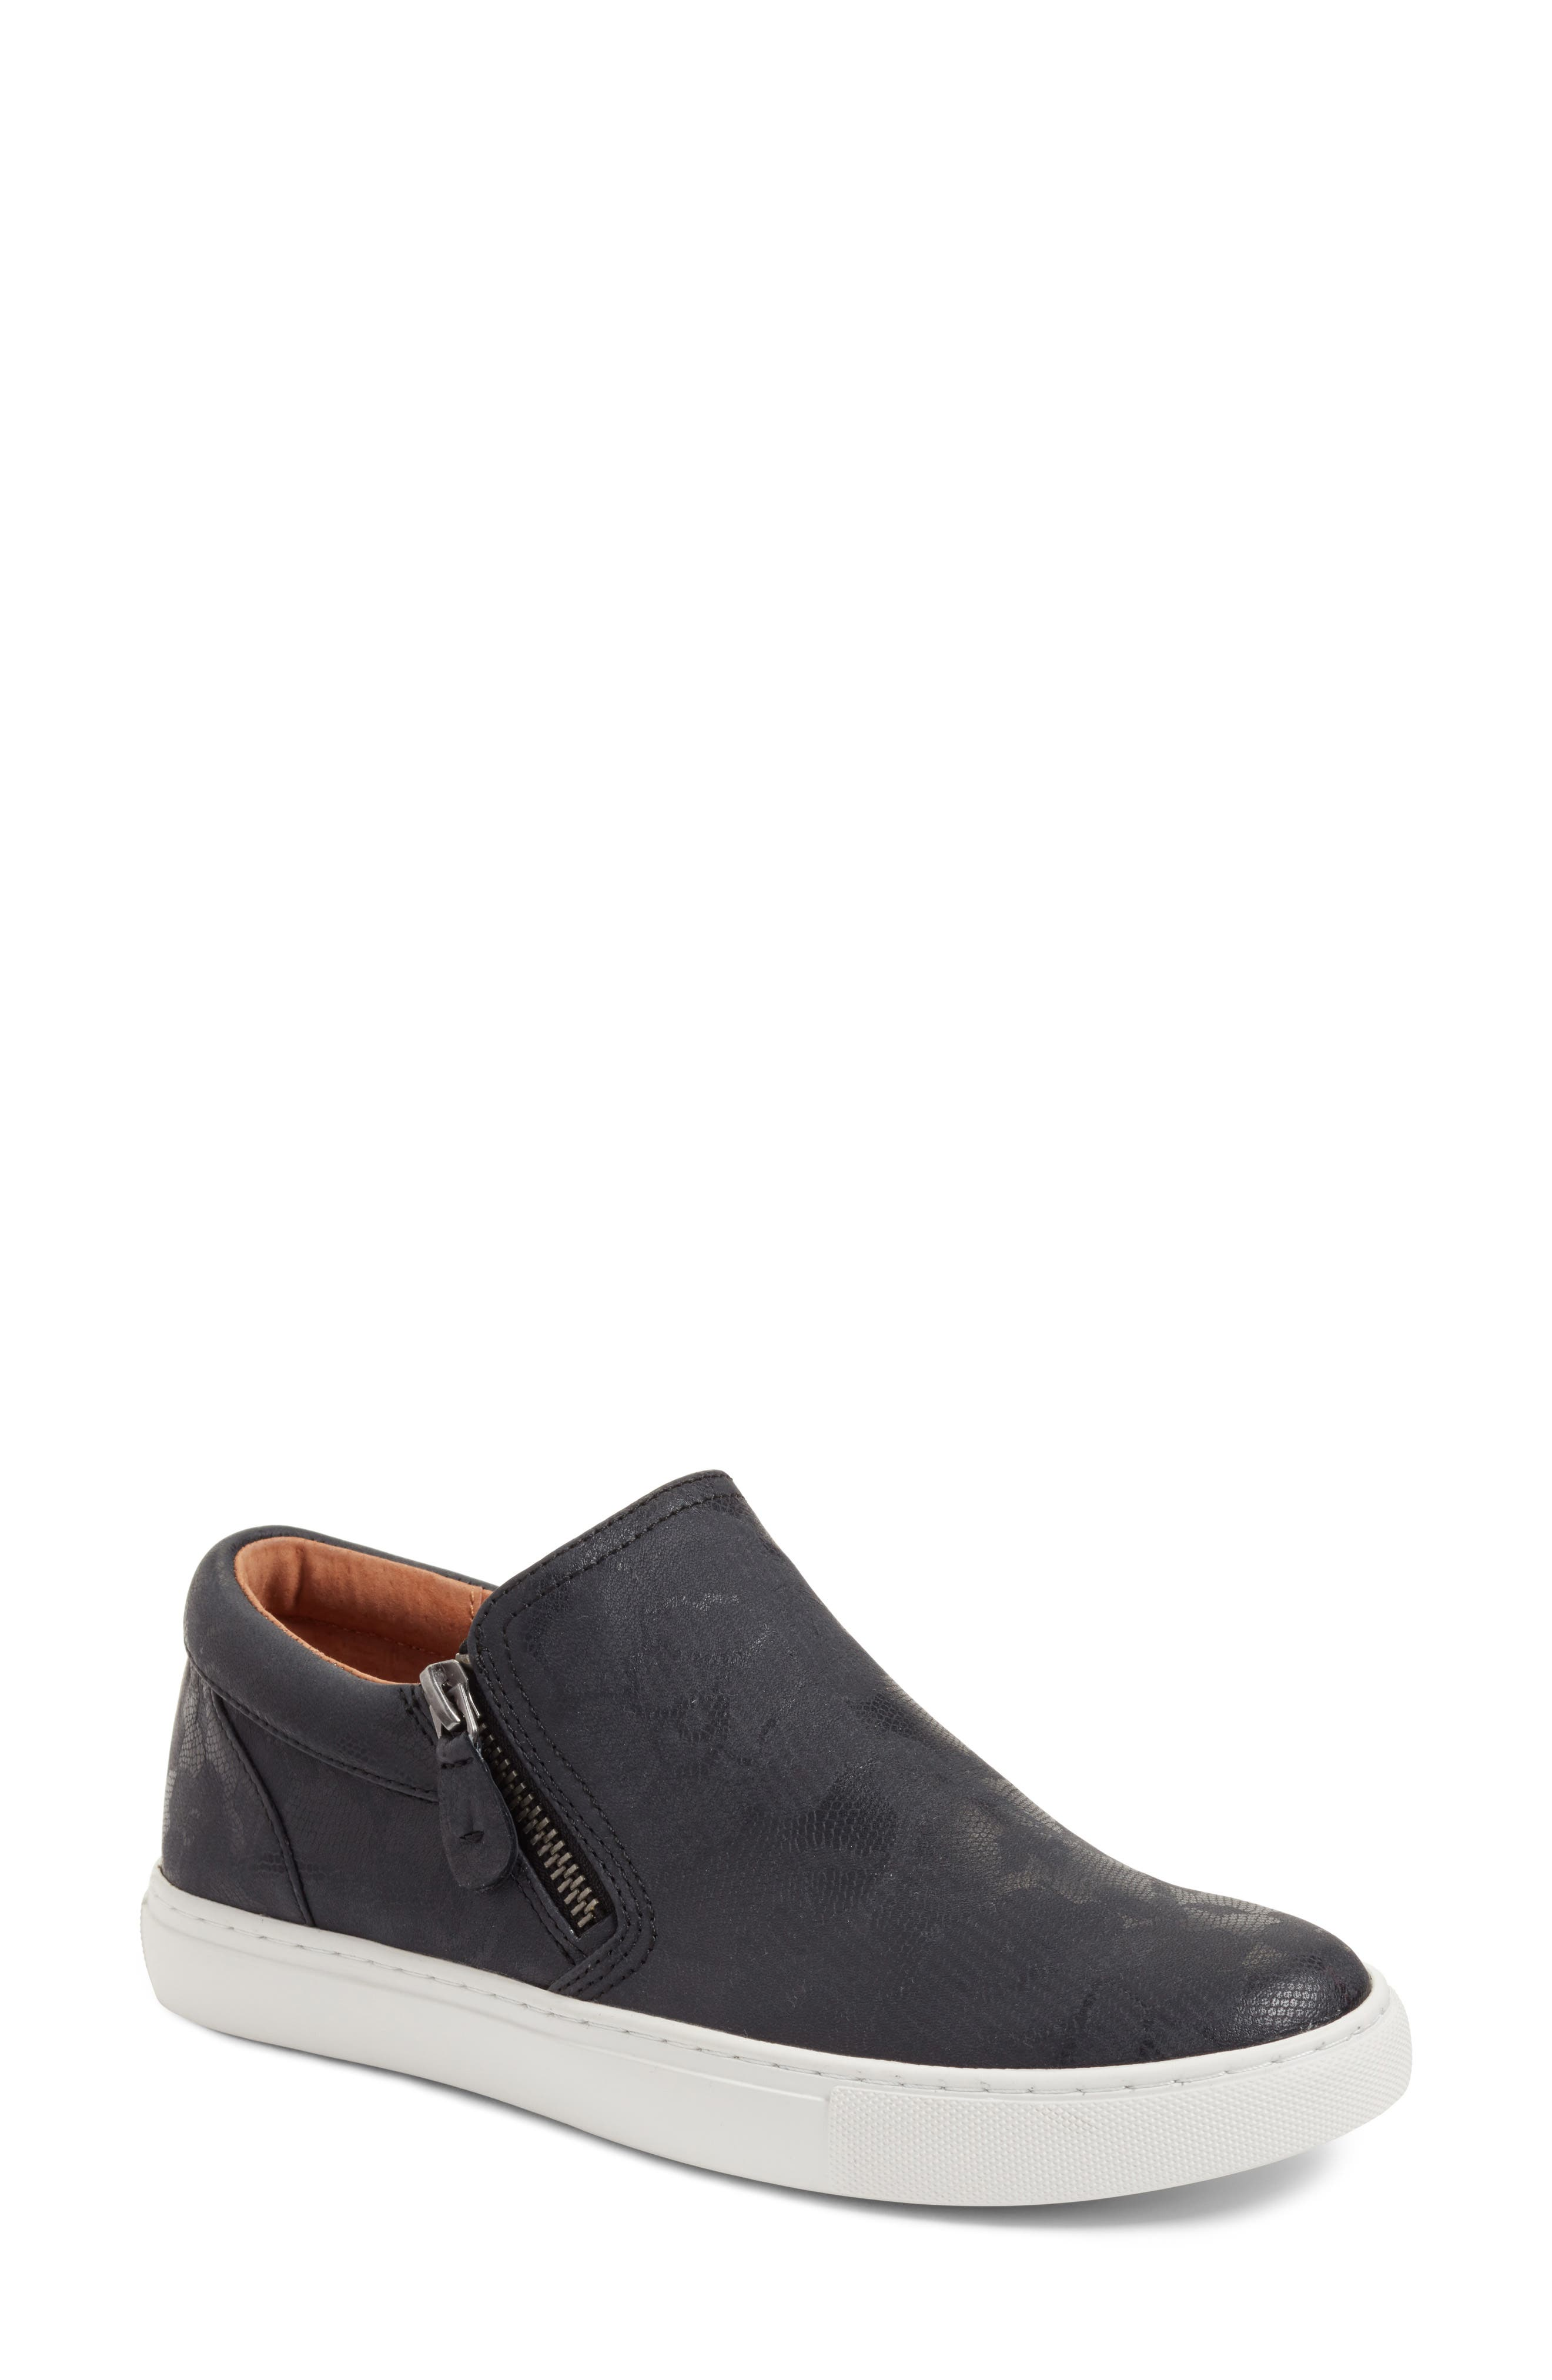 by Kenneth Cole Lowe Sneaker,                             Main thumbnail 1, color,                             002